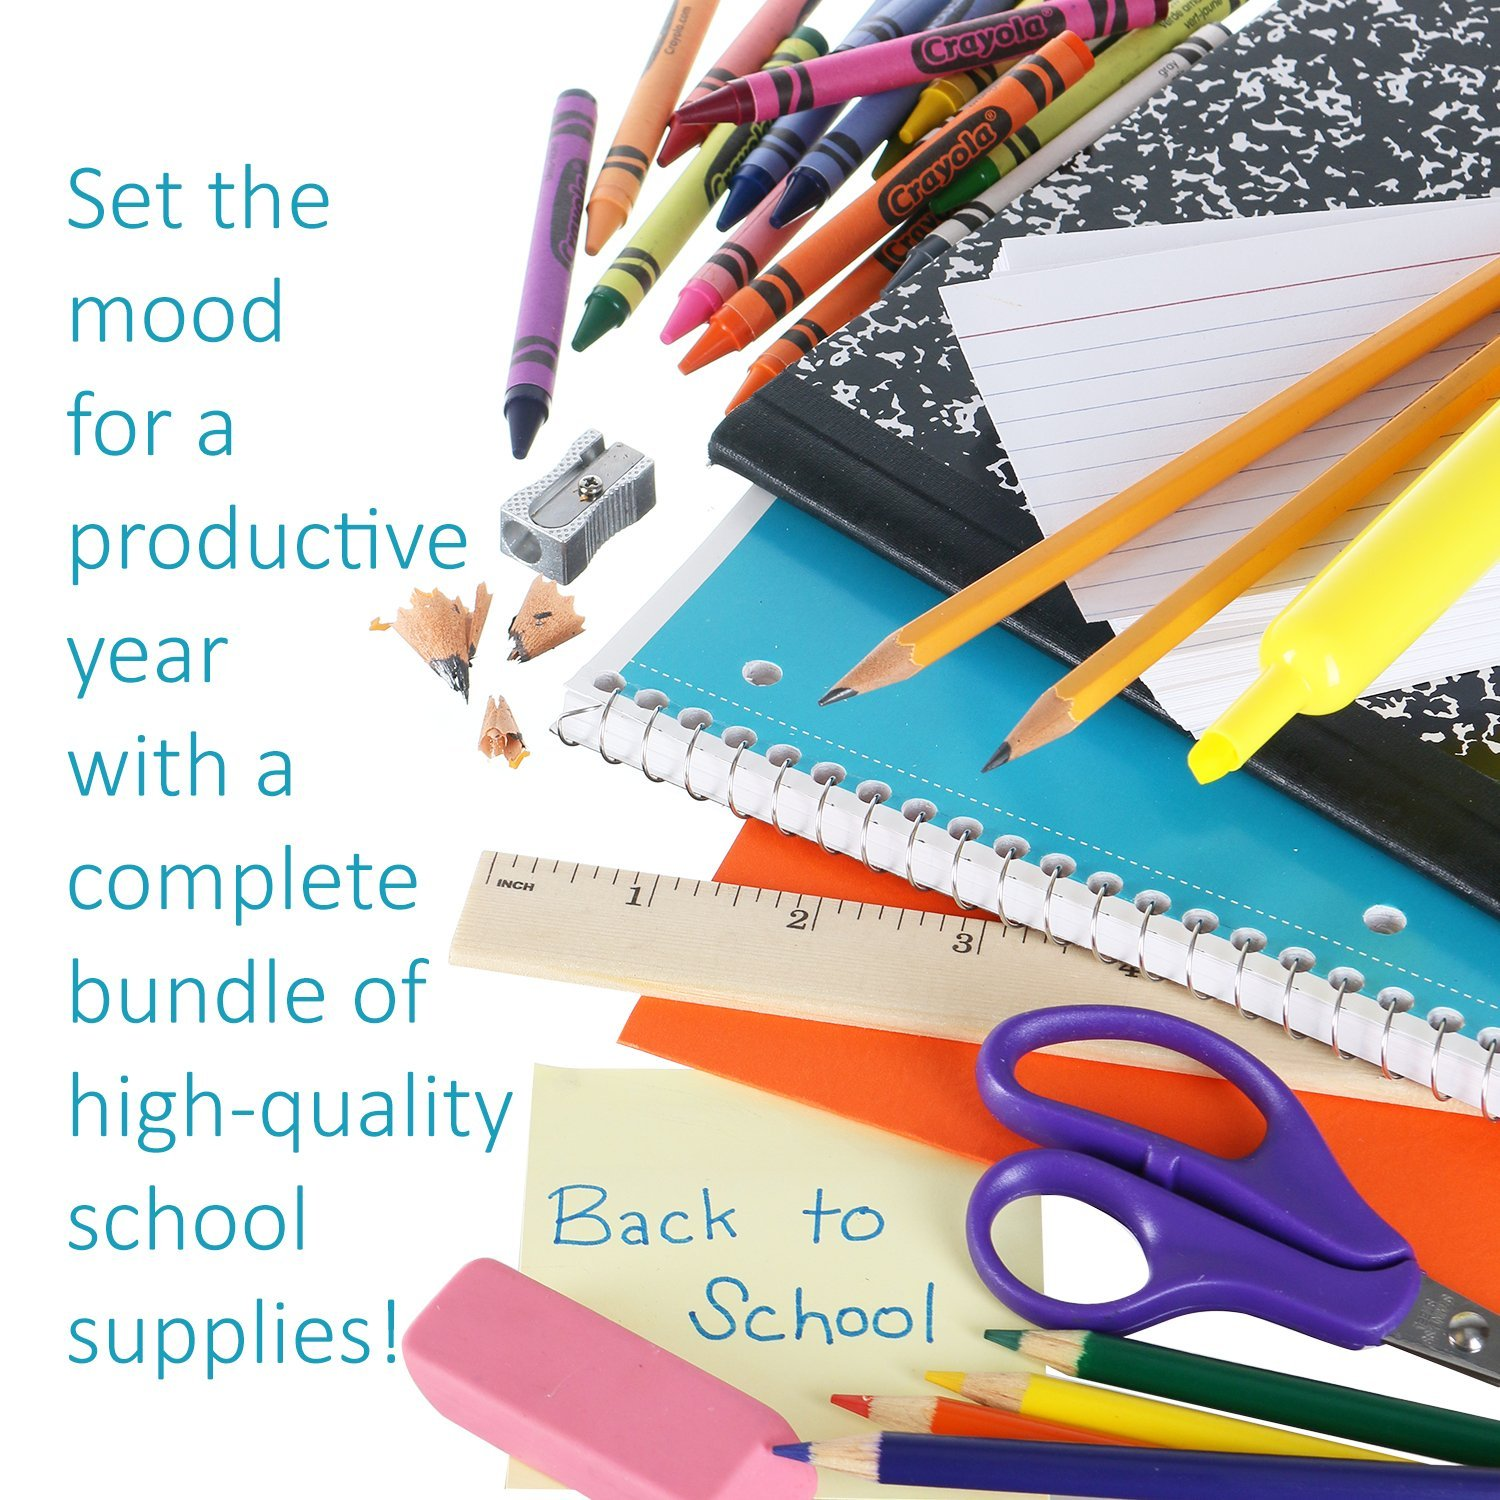 DilaBee Back to School Supplies Kit for Third to Fifth Grade Kids: Complete Classroom Supply Bundle - Set of 20 Elementary School Essentials - Crayola Art, Elmer's Glue, Pencils, Papers by DilaBee (Image #3)